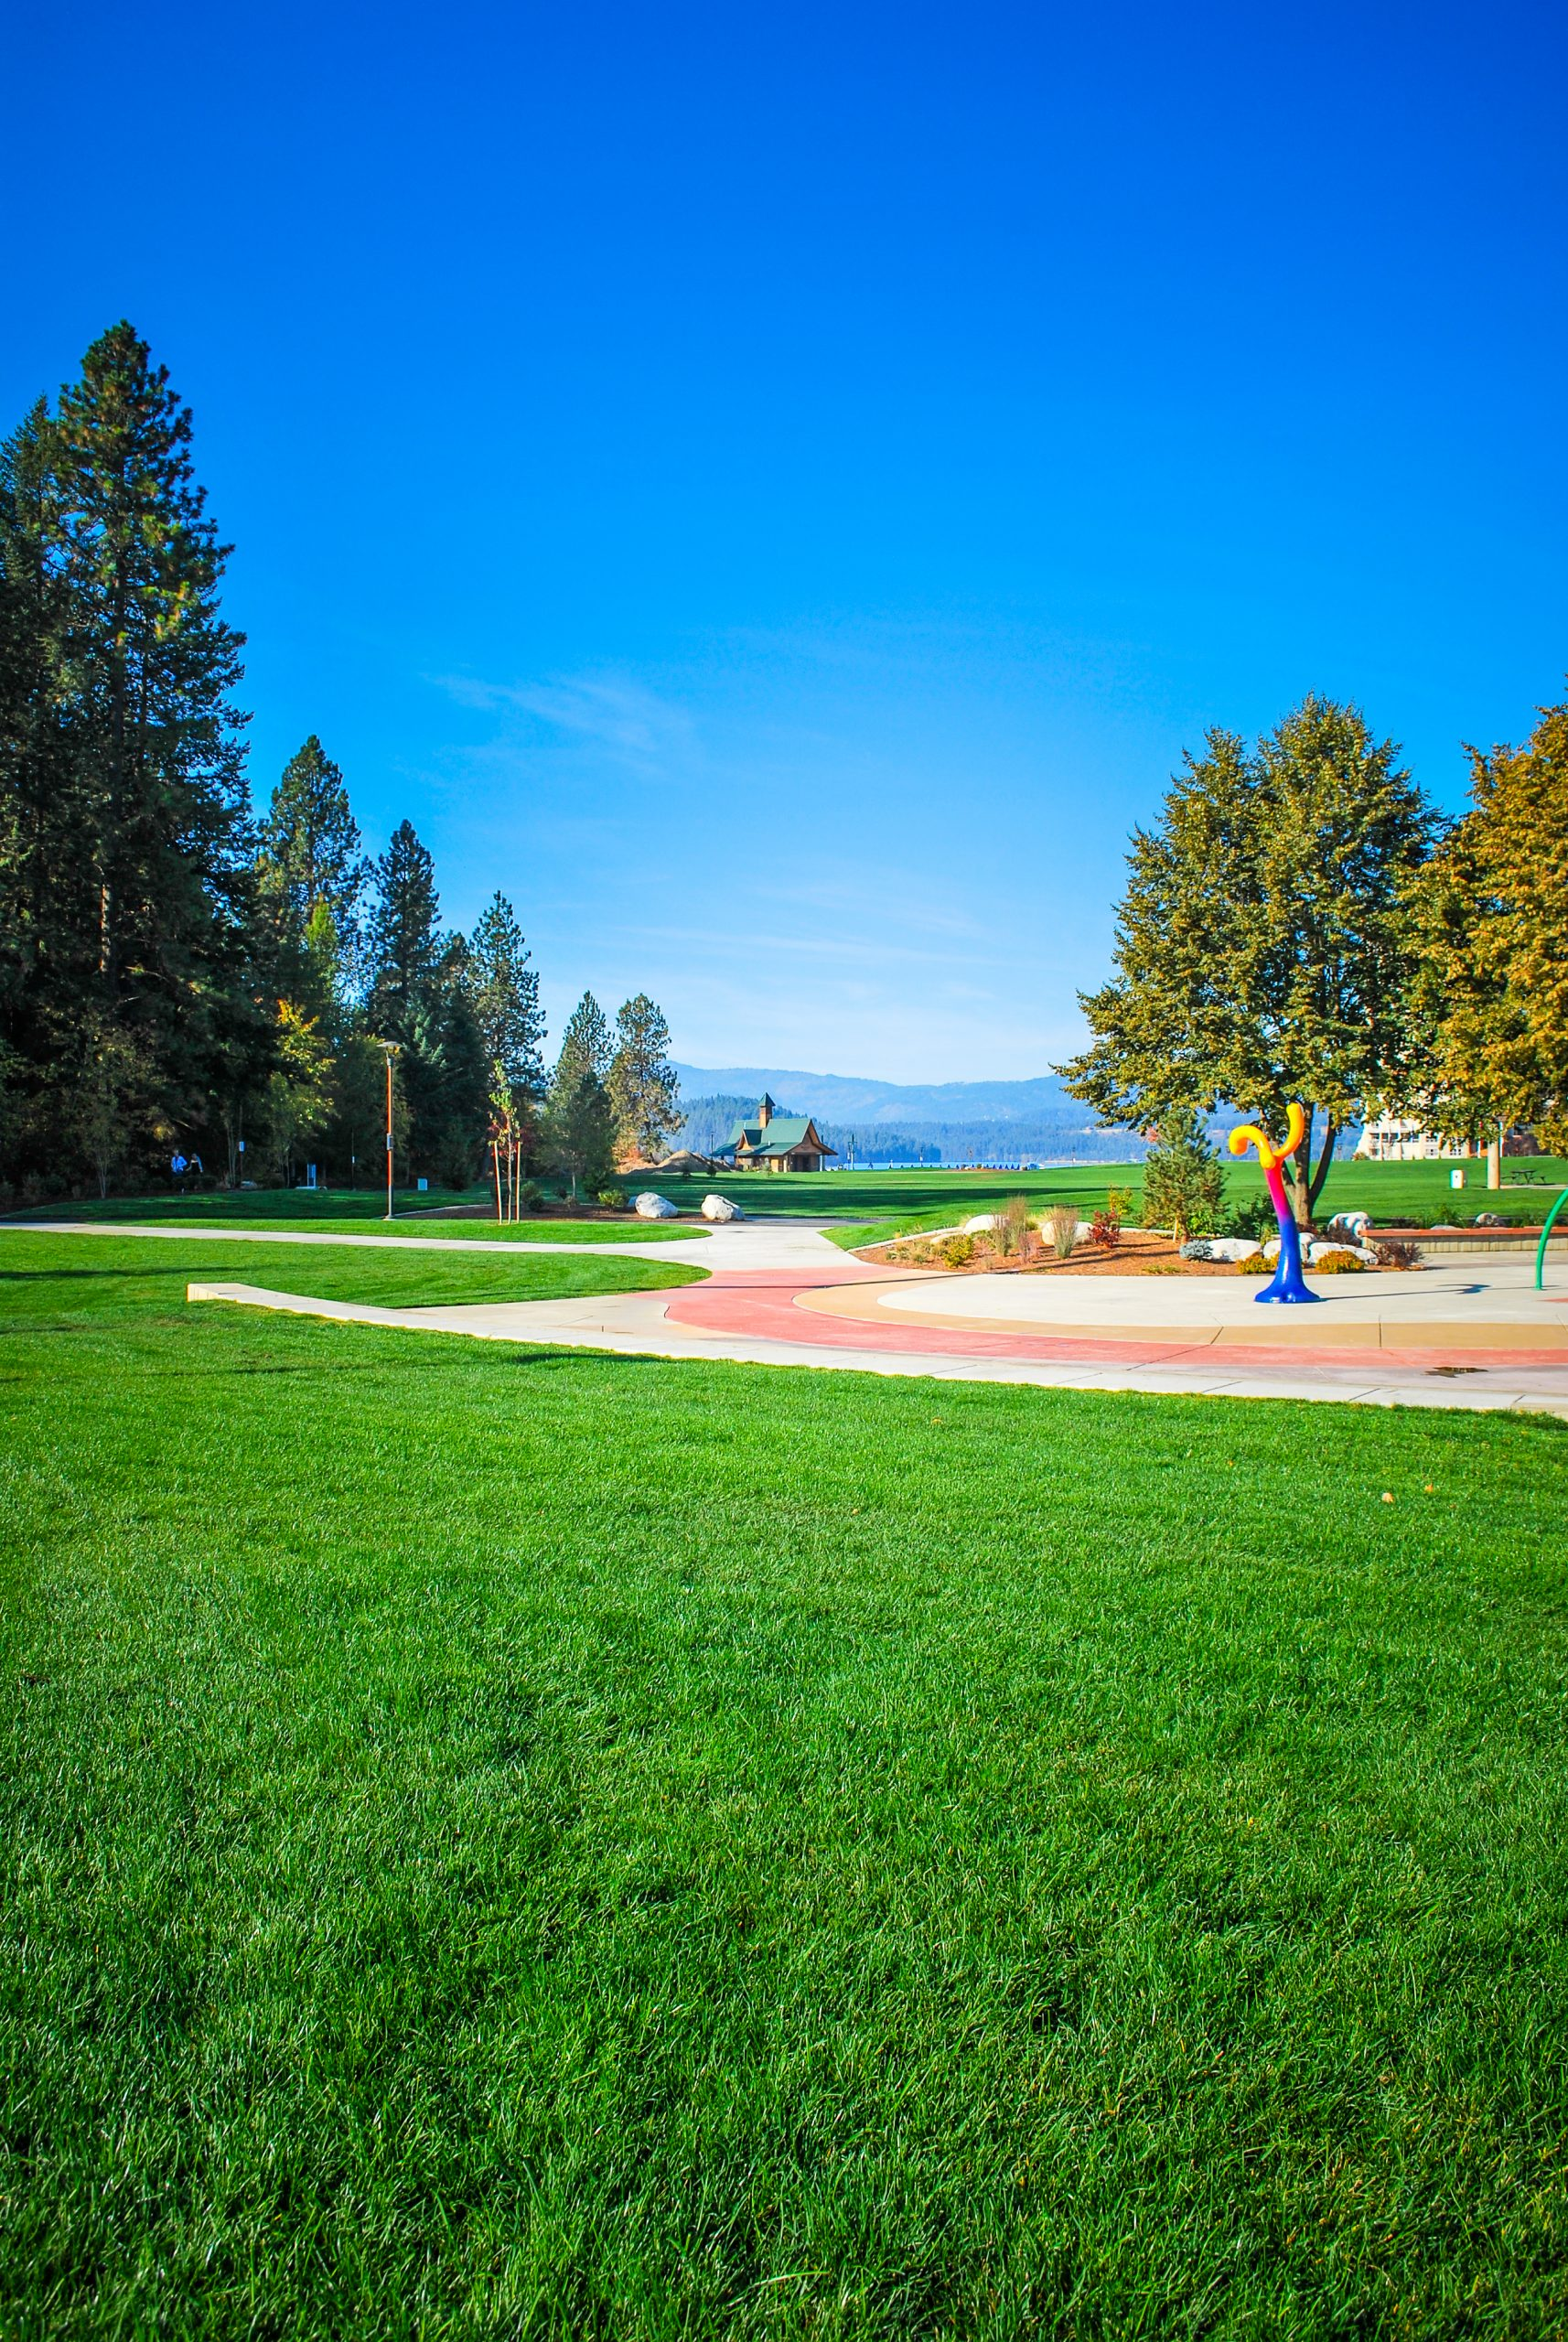 The McEuen Park Redevelopment was a collaborative project that features an ADA playground, splash pad, bike/pedestrian paths, open green space, grand pavillion, restrooms, dog park, subterranean parking structure, hardscape courts, lighting, and public art.